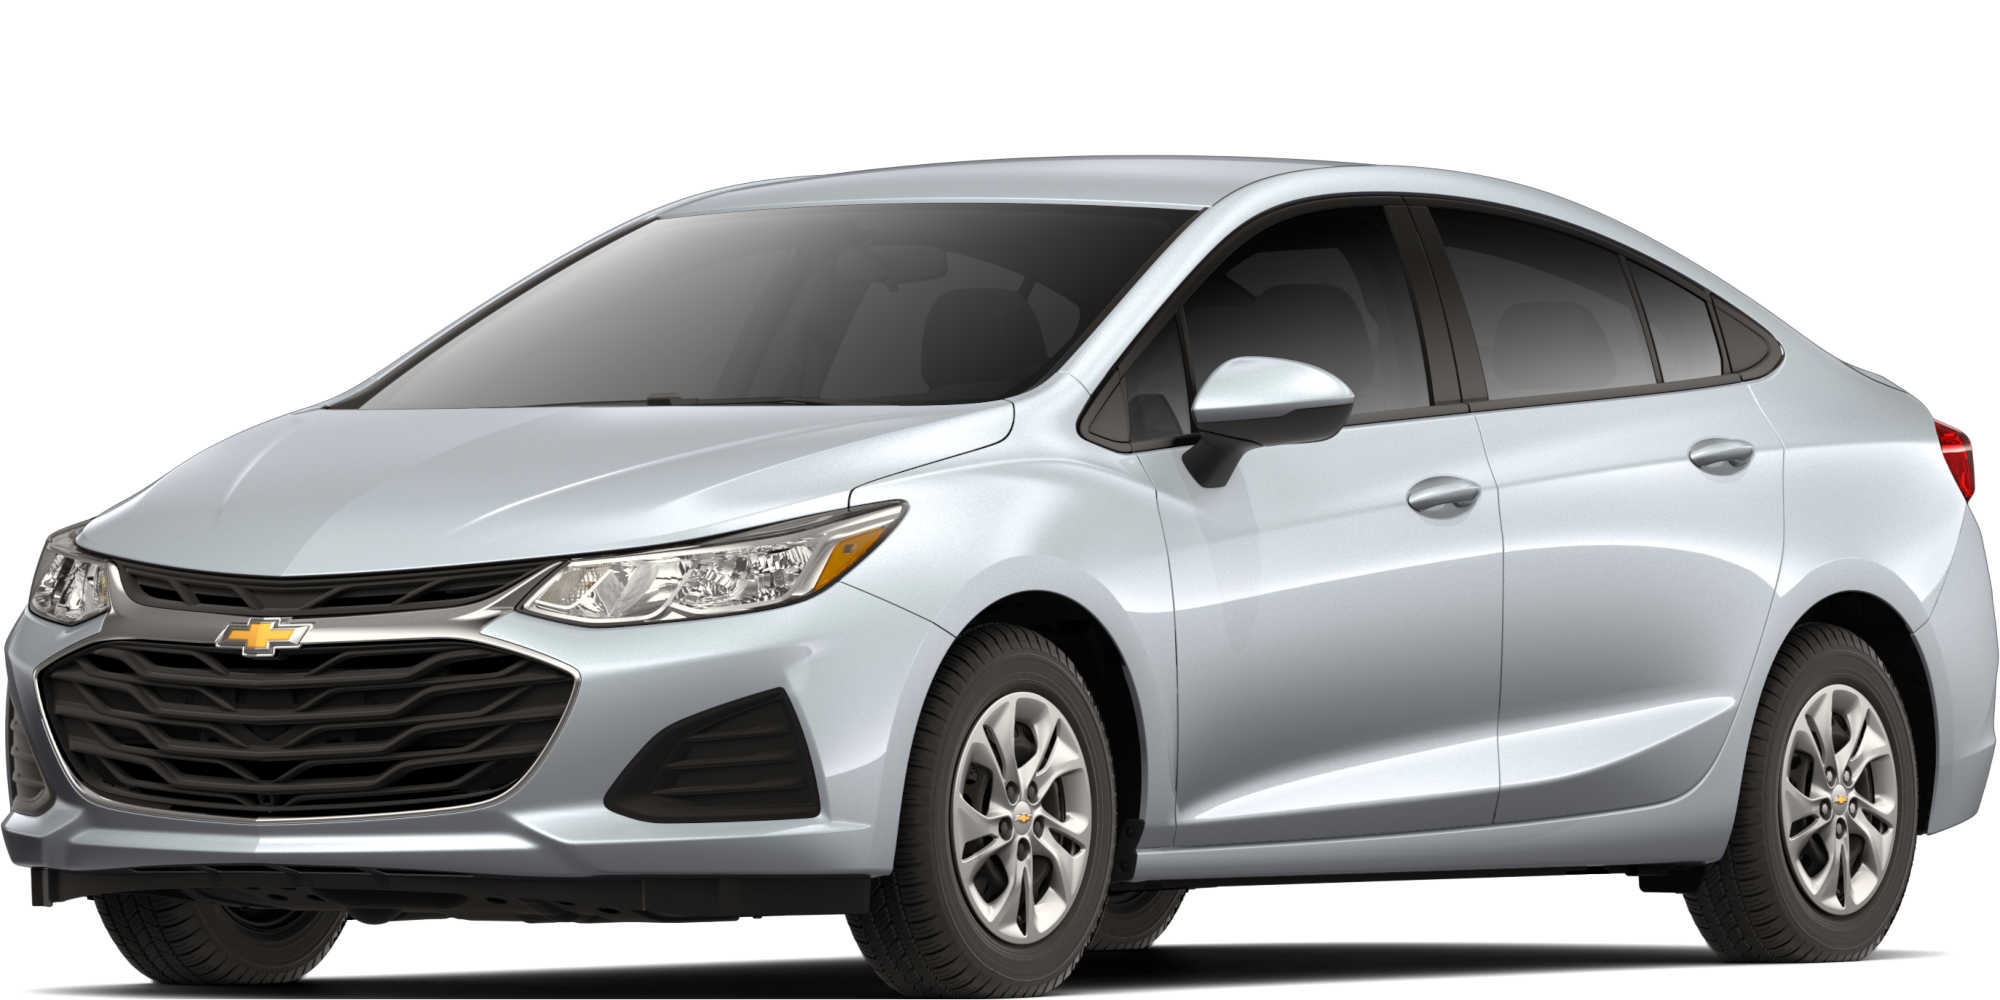 Chevrolet Cruze Owners Manual: Wheel Replacement